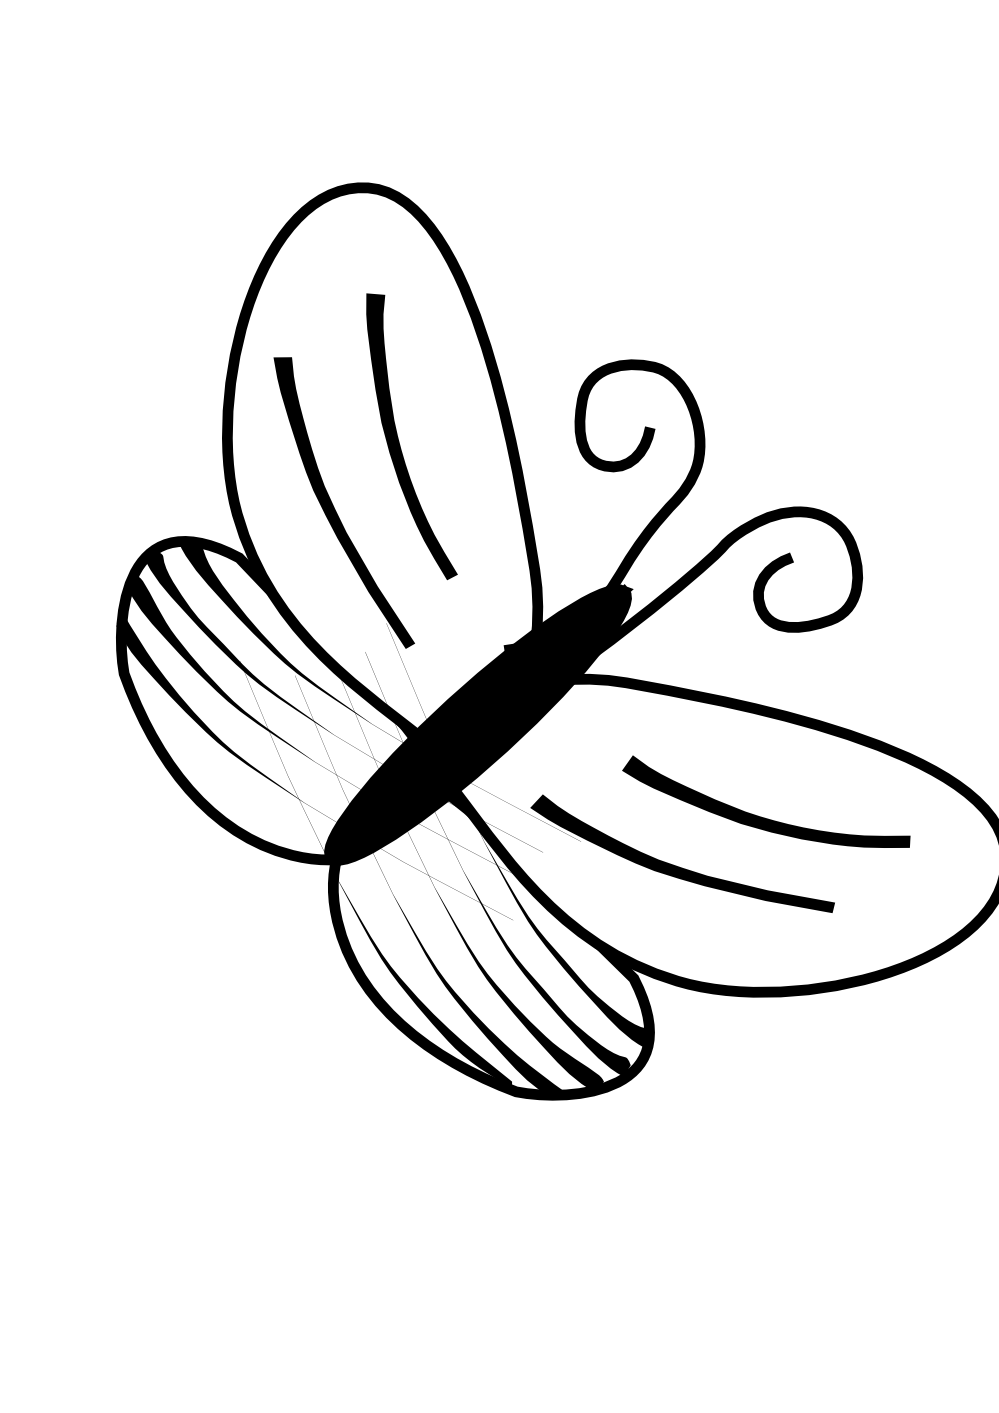 Butterfly Clip Art Black And White | Clipart Panda - Free Clipart ...